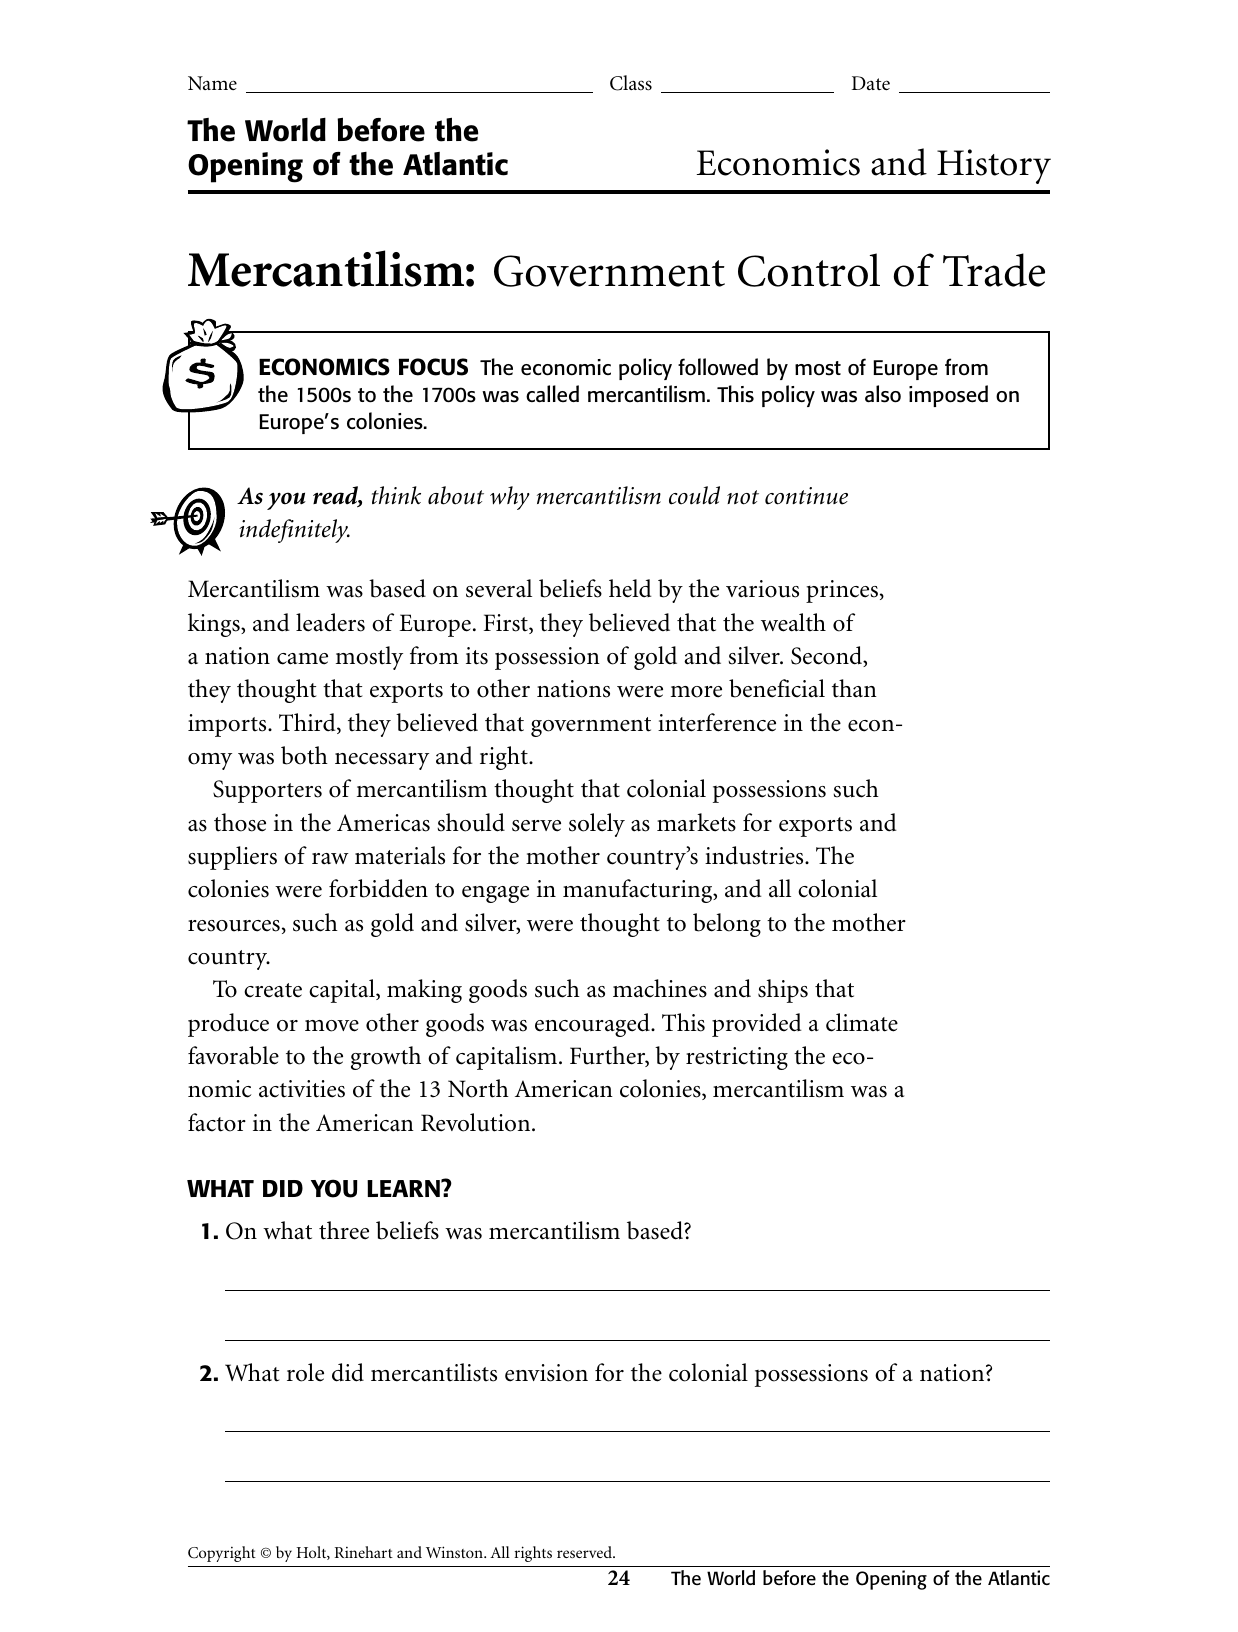 Mercantilism: Government Control of Trade